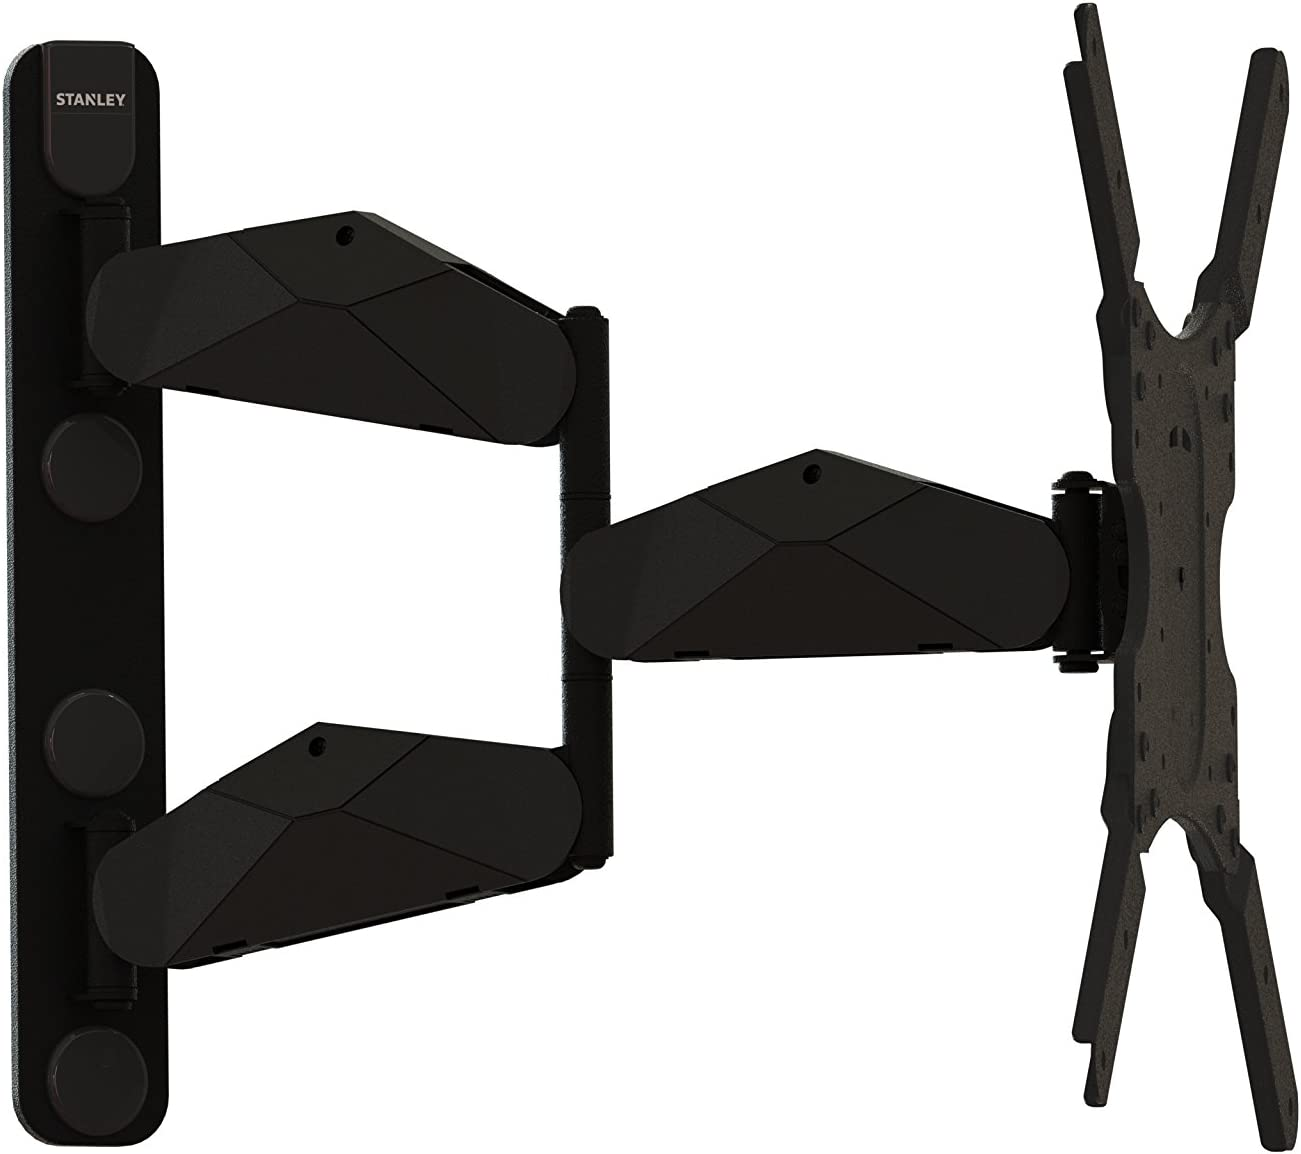 Stanley TV Wall Mount - Slim Full Motion Articulating Mount for Large Flat Panel Television 23